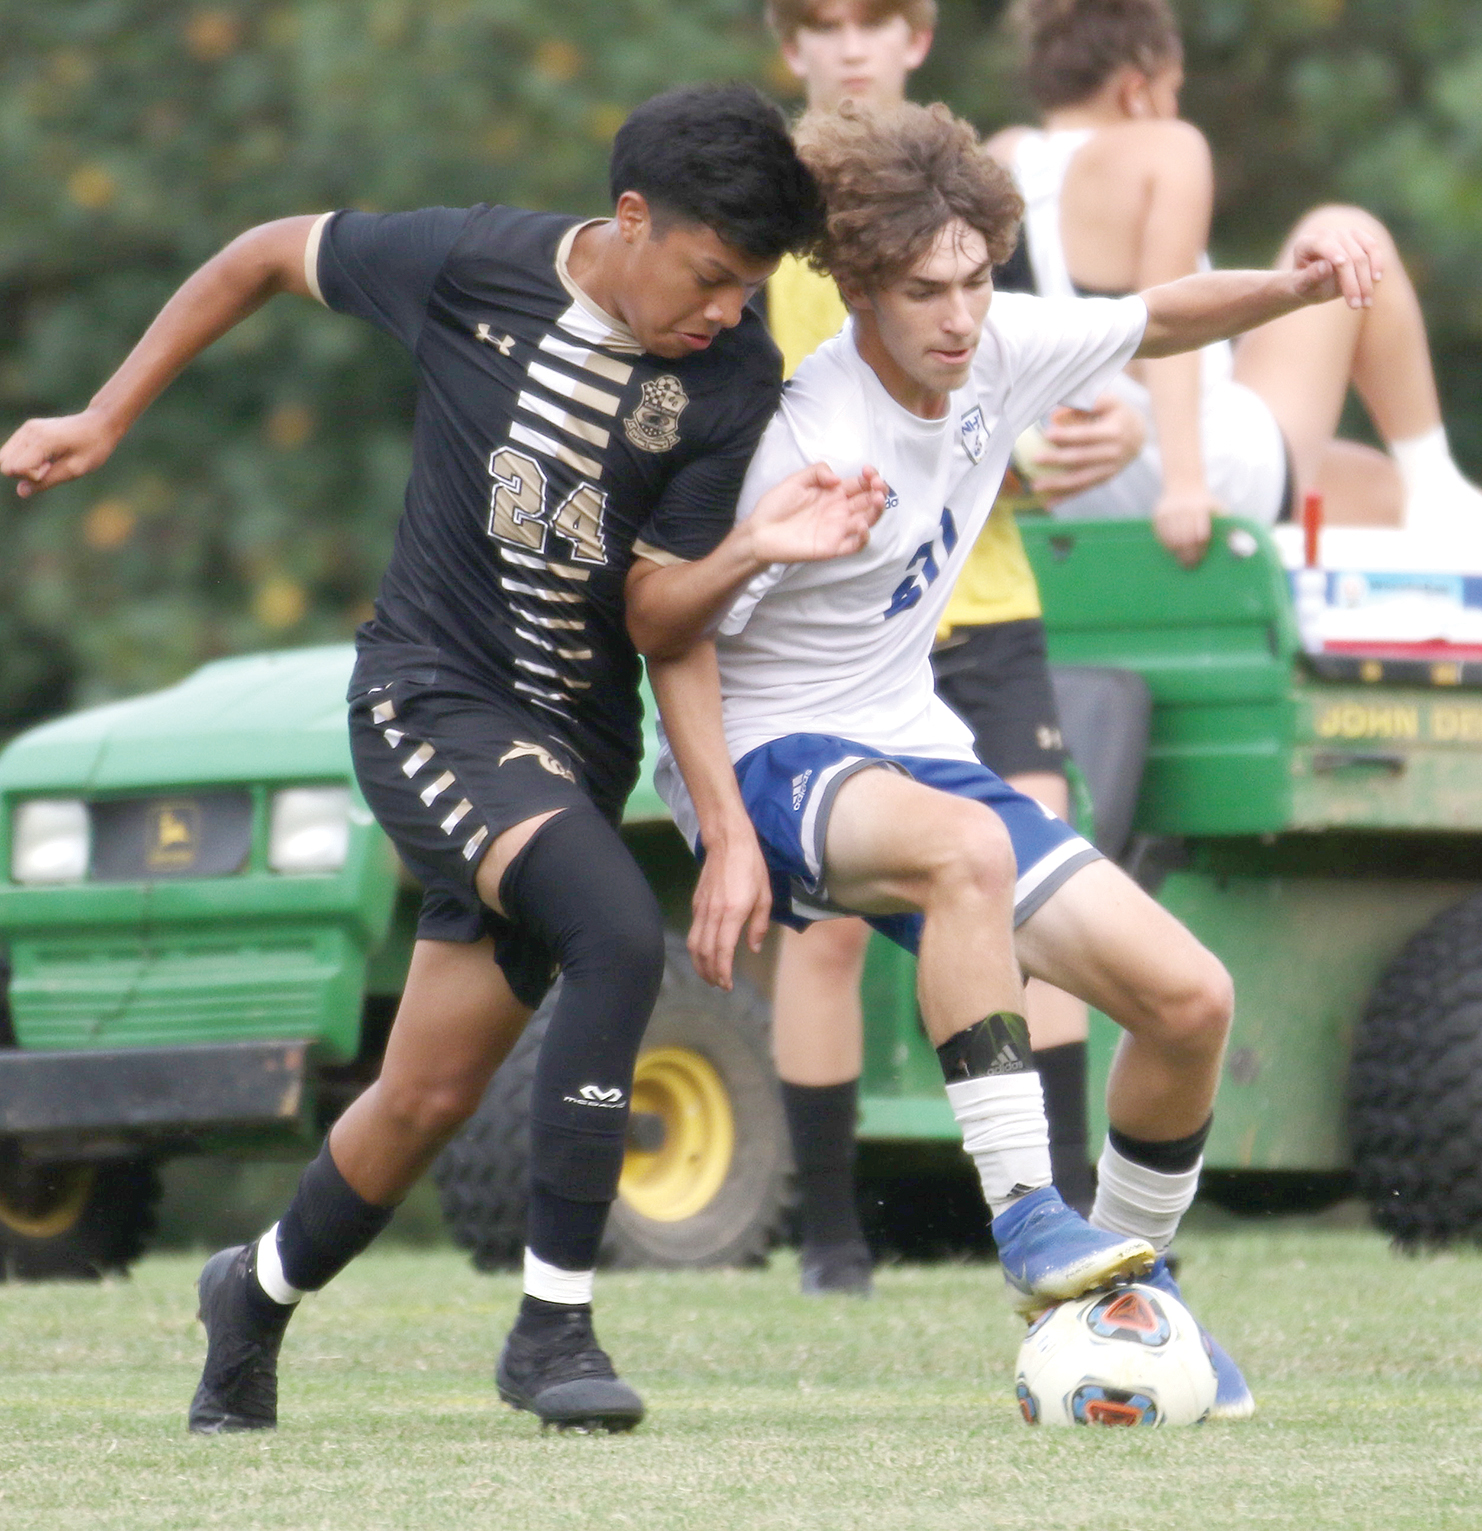 Panthers upend Cougars, 4-1